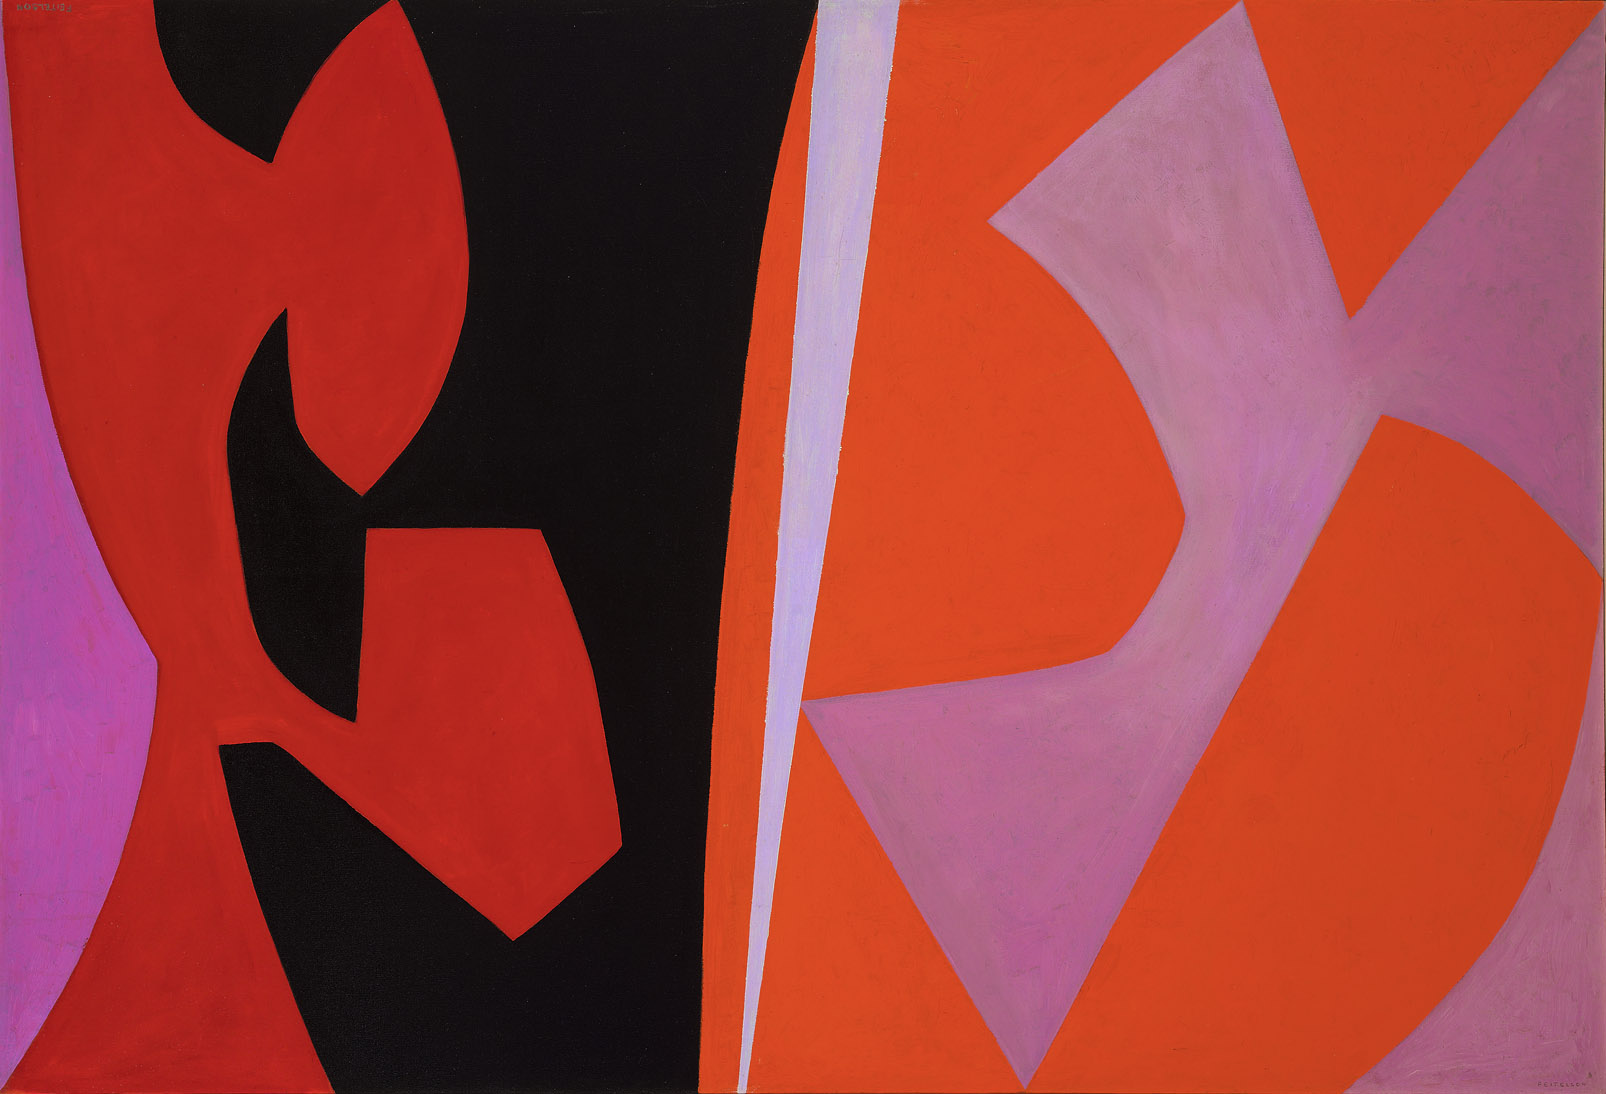 Magical Space Forms , 1952-54  oil on canvas 45 x 66 inches; 114.3 x 167.6 centimeters